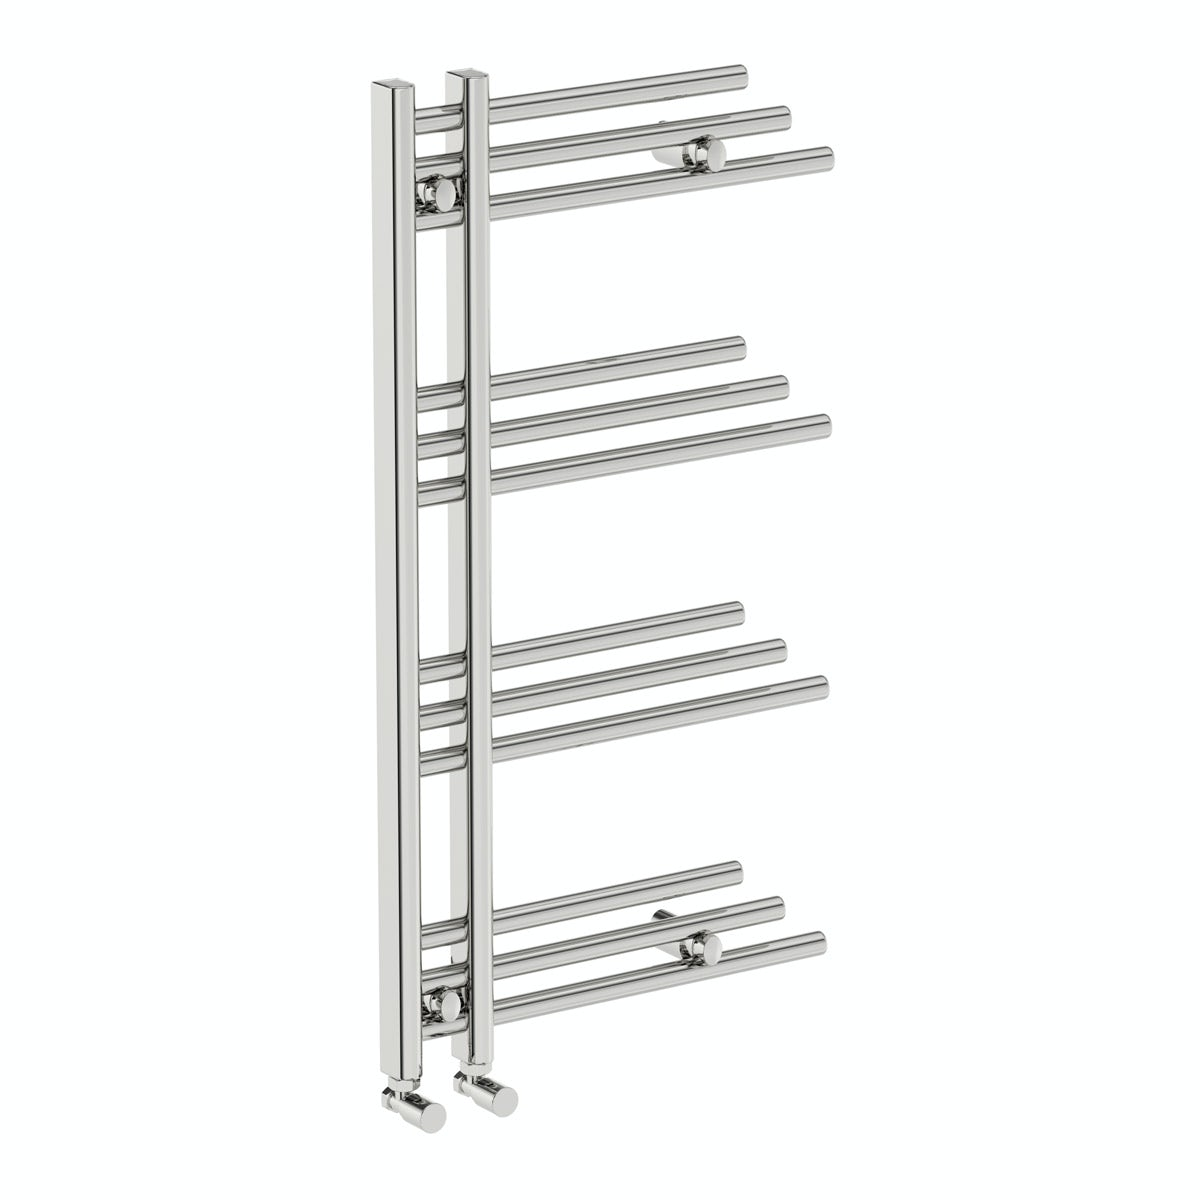 Mode Harrison heated towel rail 950 x 500| VictoriaPlum.com